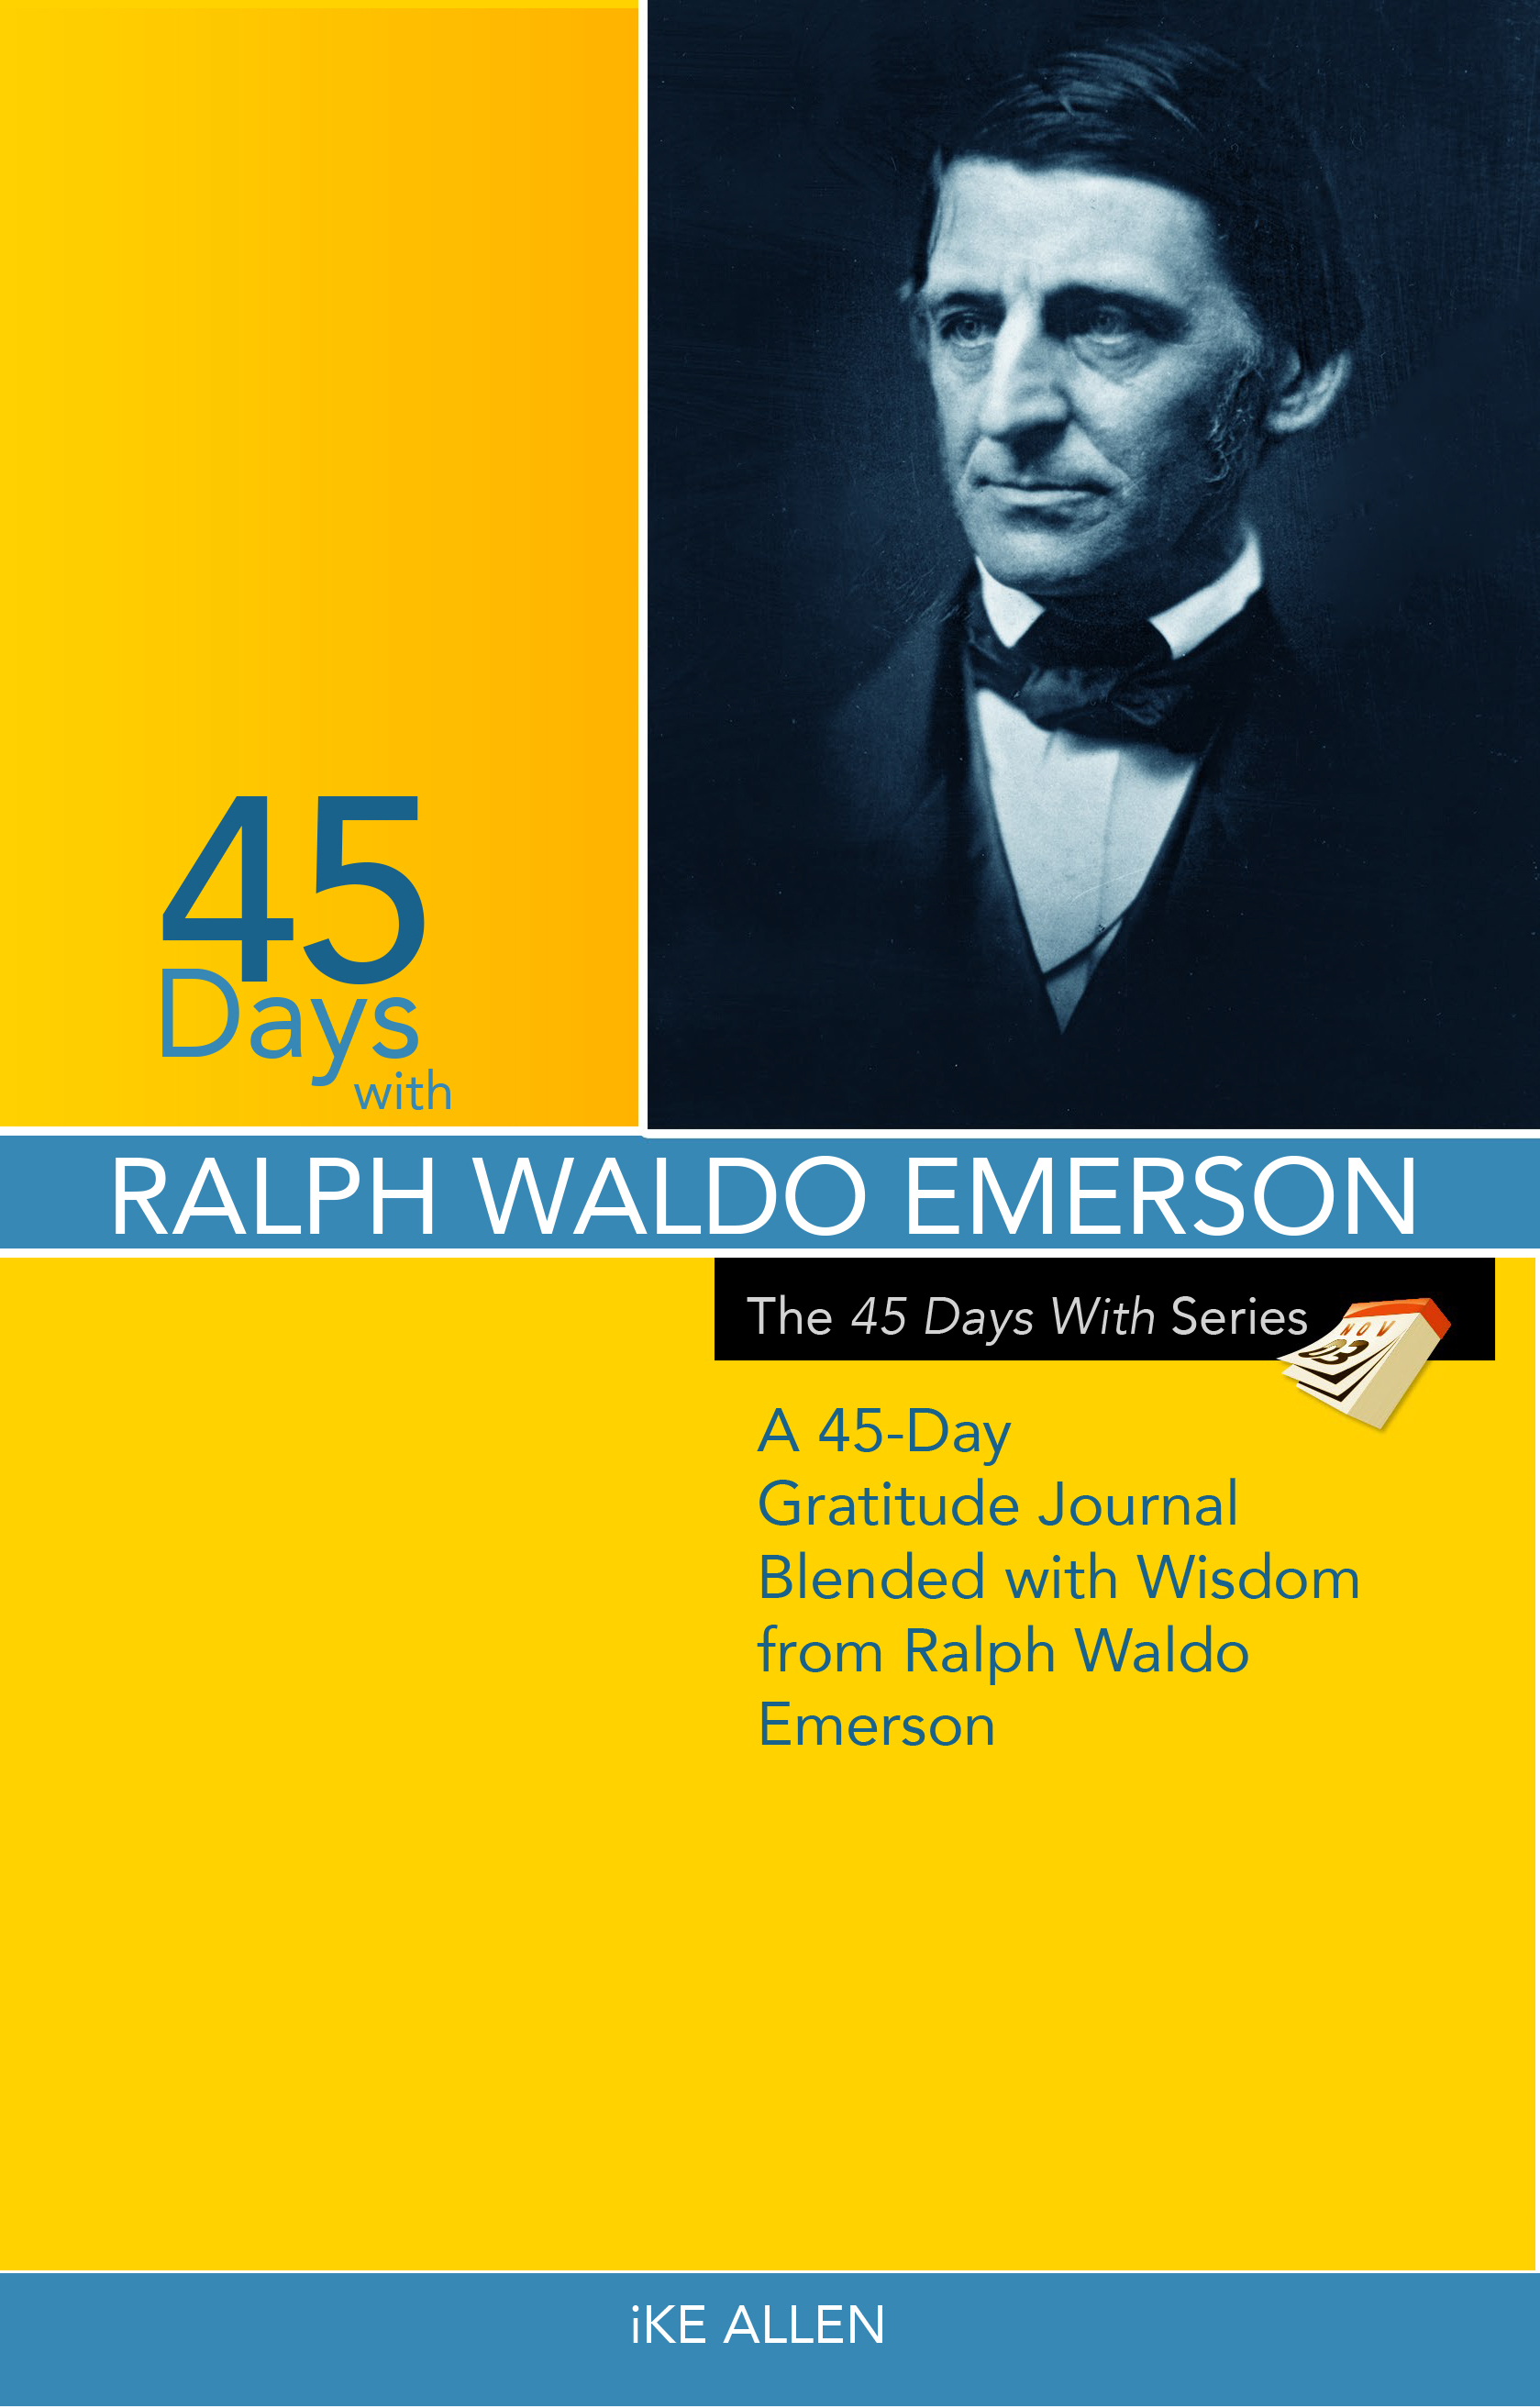 45 Days with Ralph Waldo Emerson